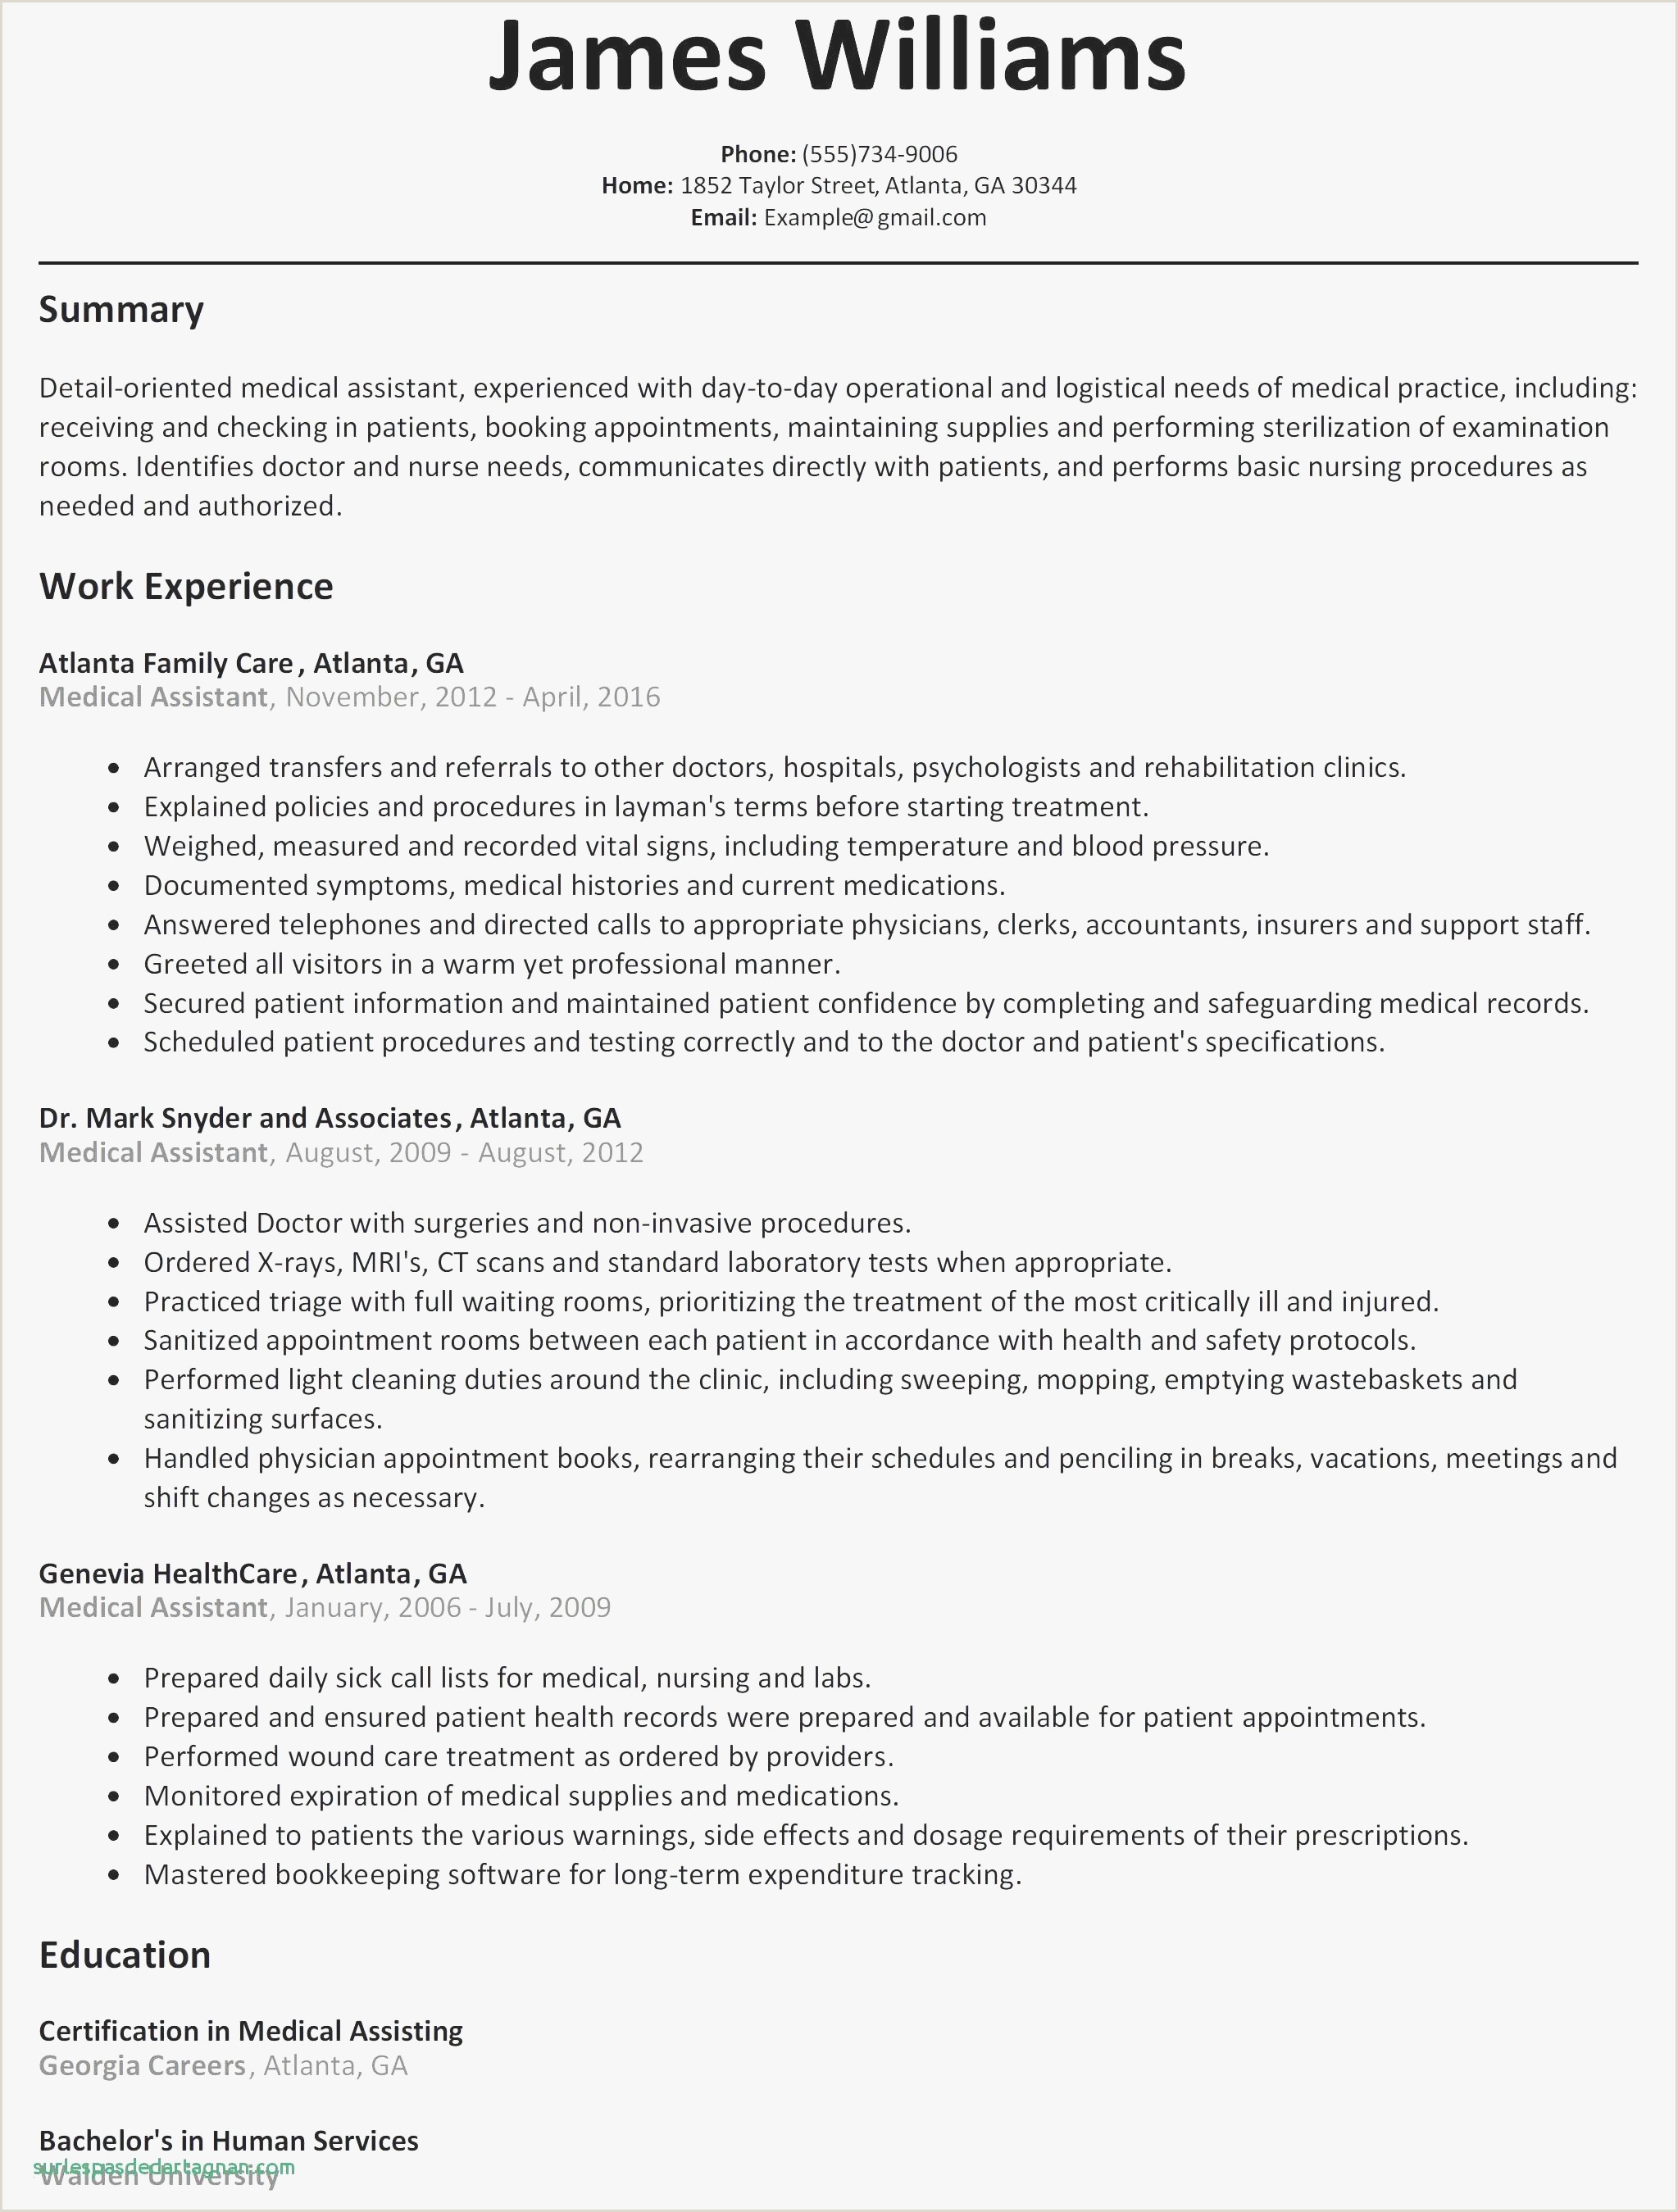 Professional Cv format In Ms Word with Photo Nursingume Template Microsoft Word Examples Cv Rn assistant